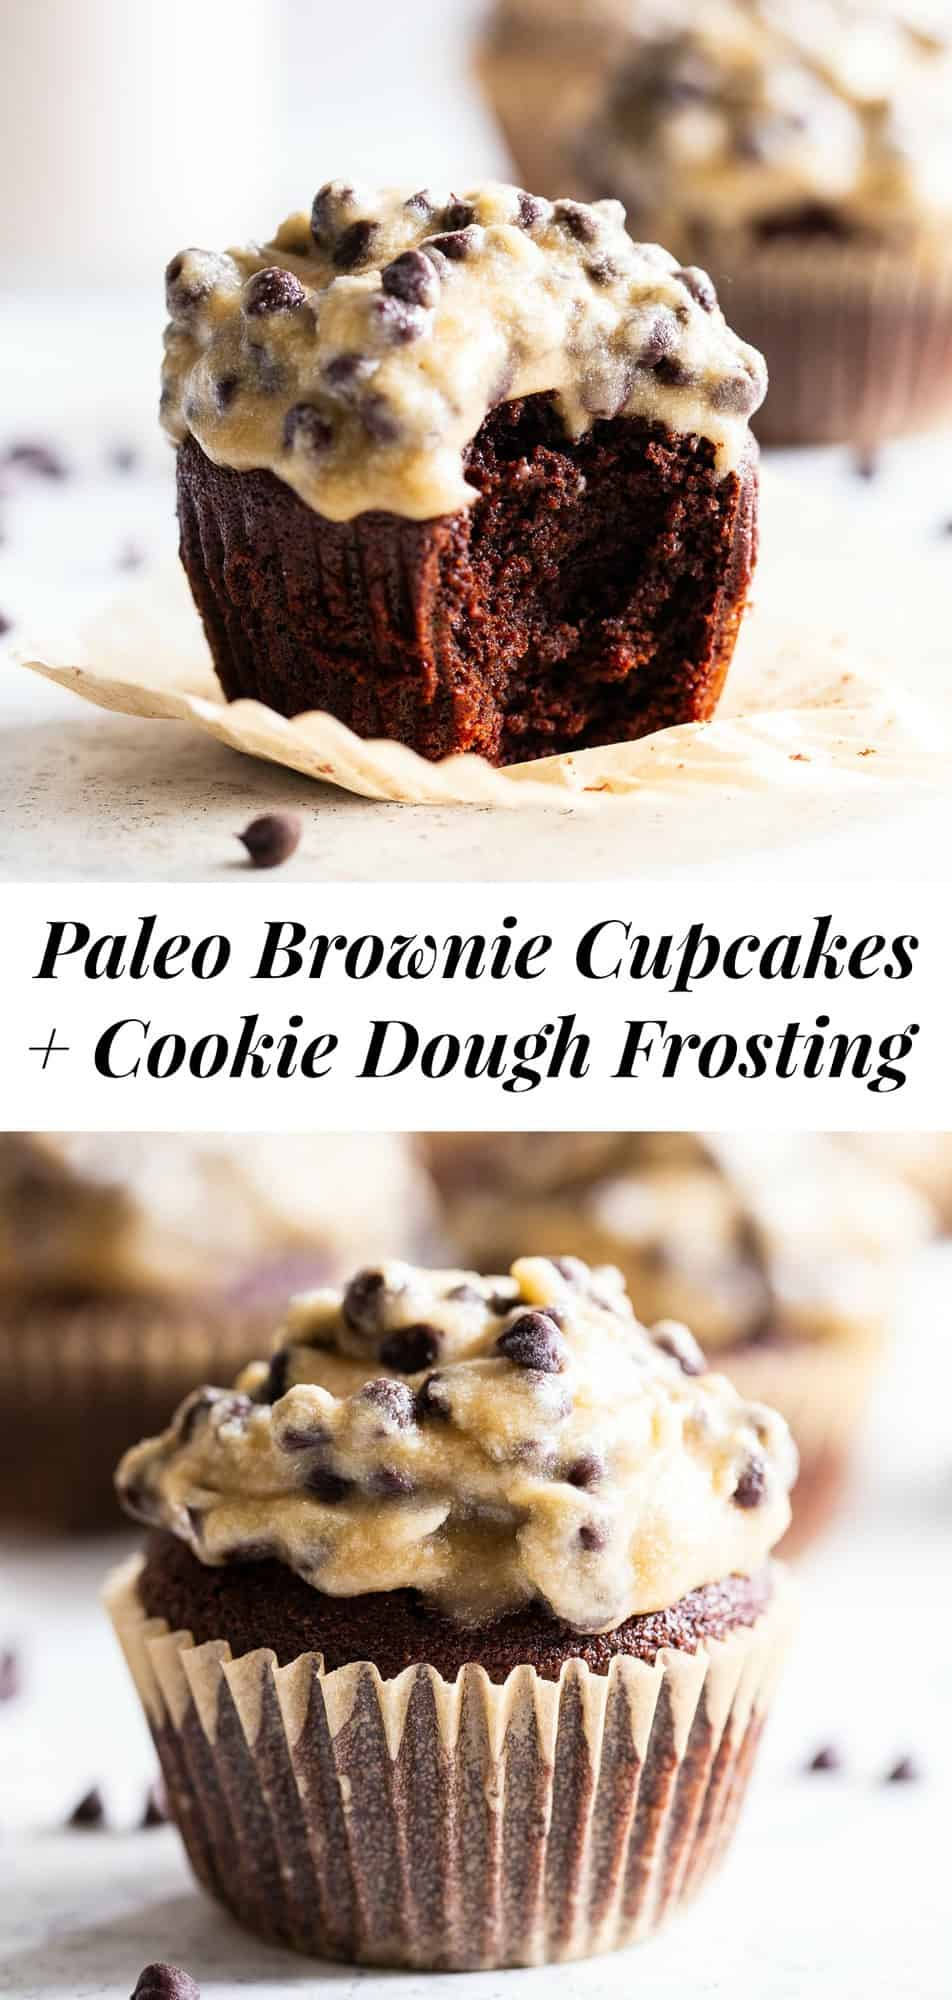 These decadent and rich paleo chocolate brownie cupcakes have a thick cookie dough buttercream frosting with a dairy free option. They're perfect for any special occasion or just because you feel like a treat!  Kid and family approved, gluten and grain free. #paleo #glutenfree #paleobaking #cupcakes